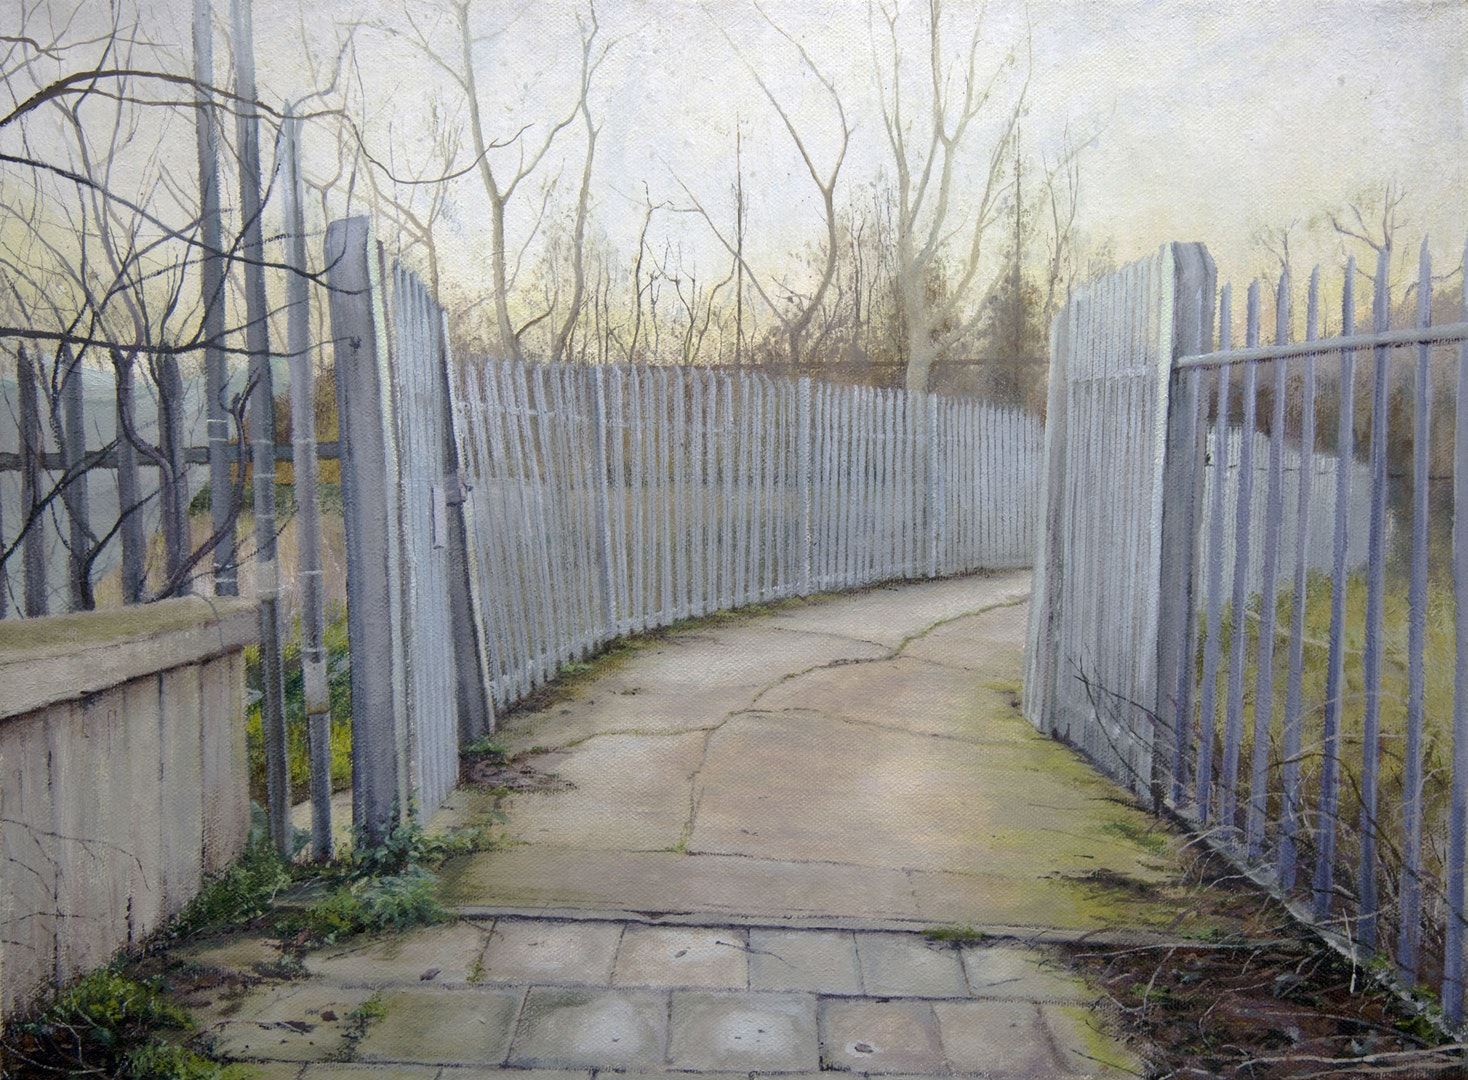 Rob Reed  Avenue  Oil on canvas, 42 x 62 x 2 cm  http://robreedpaintings.com